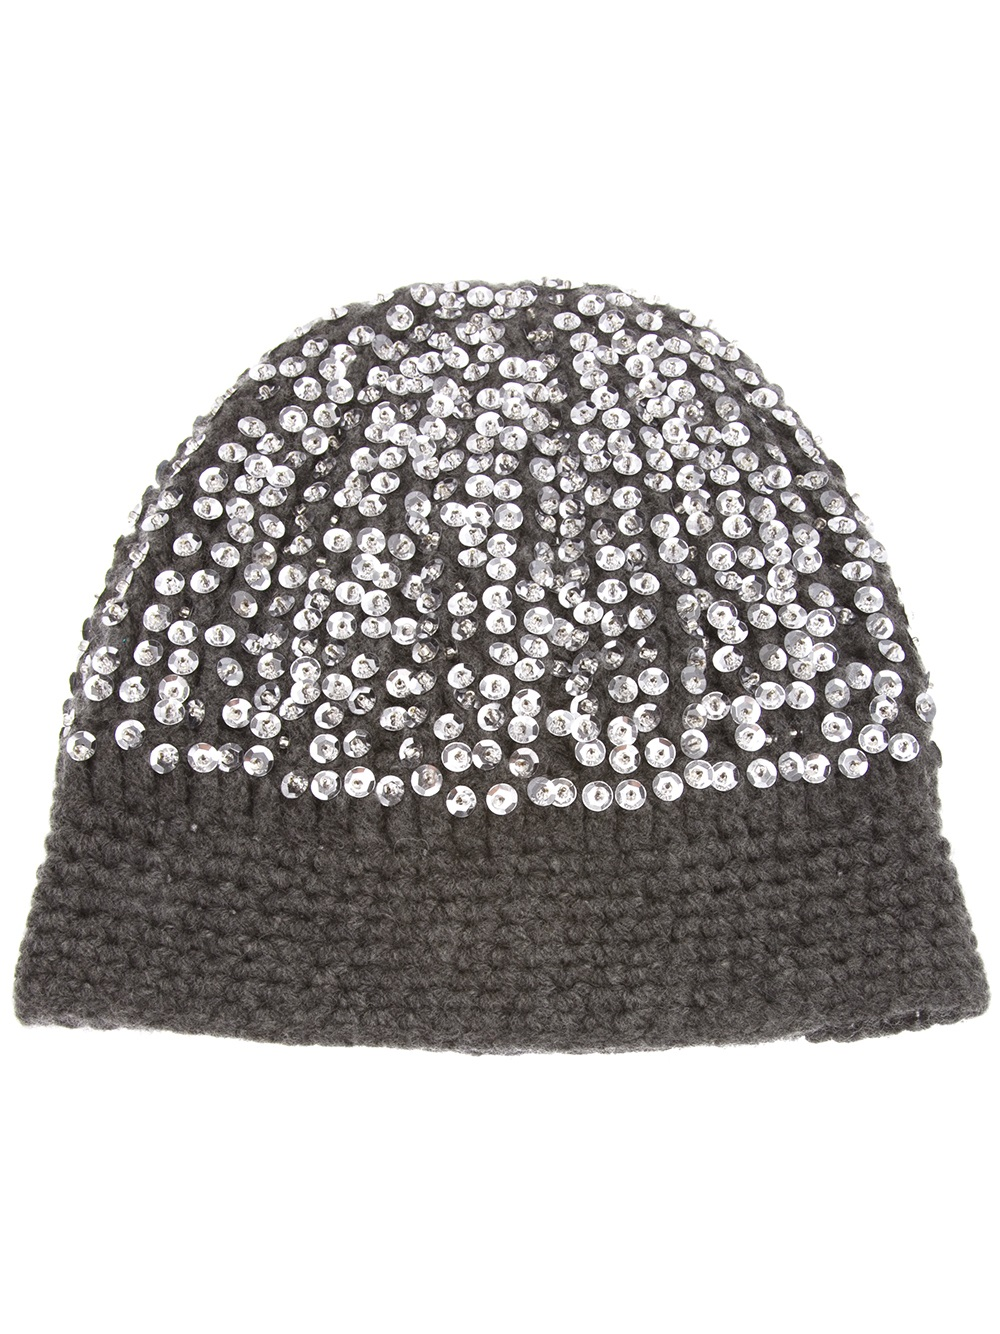 Lyst - Madeleine Thompson Sequin Beanie Hat in Gray e805ba8a468